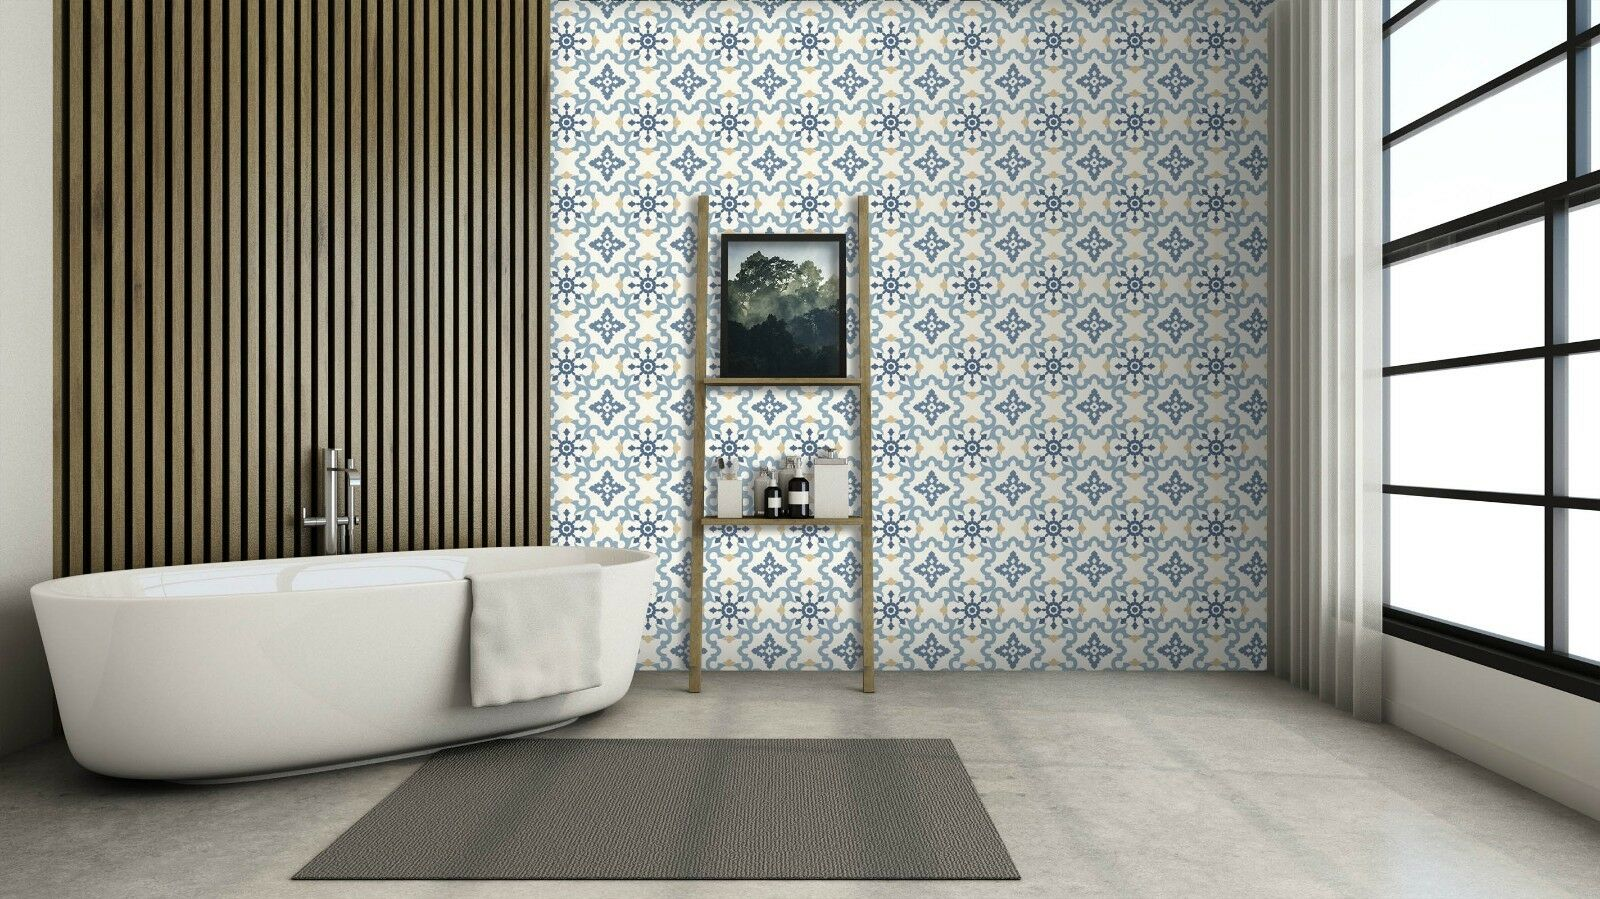 3D bluee Flower 81 Texture Tiles Marble Wall Paper Decal Wallpaper Mural AJ AU